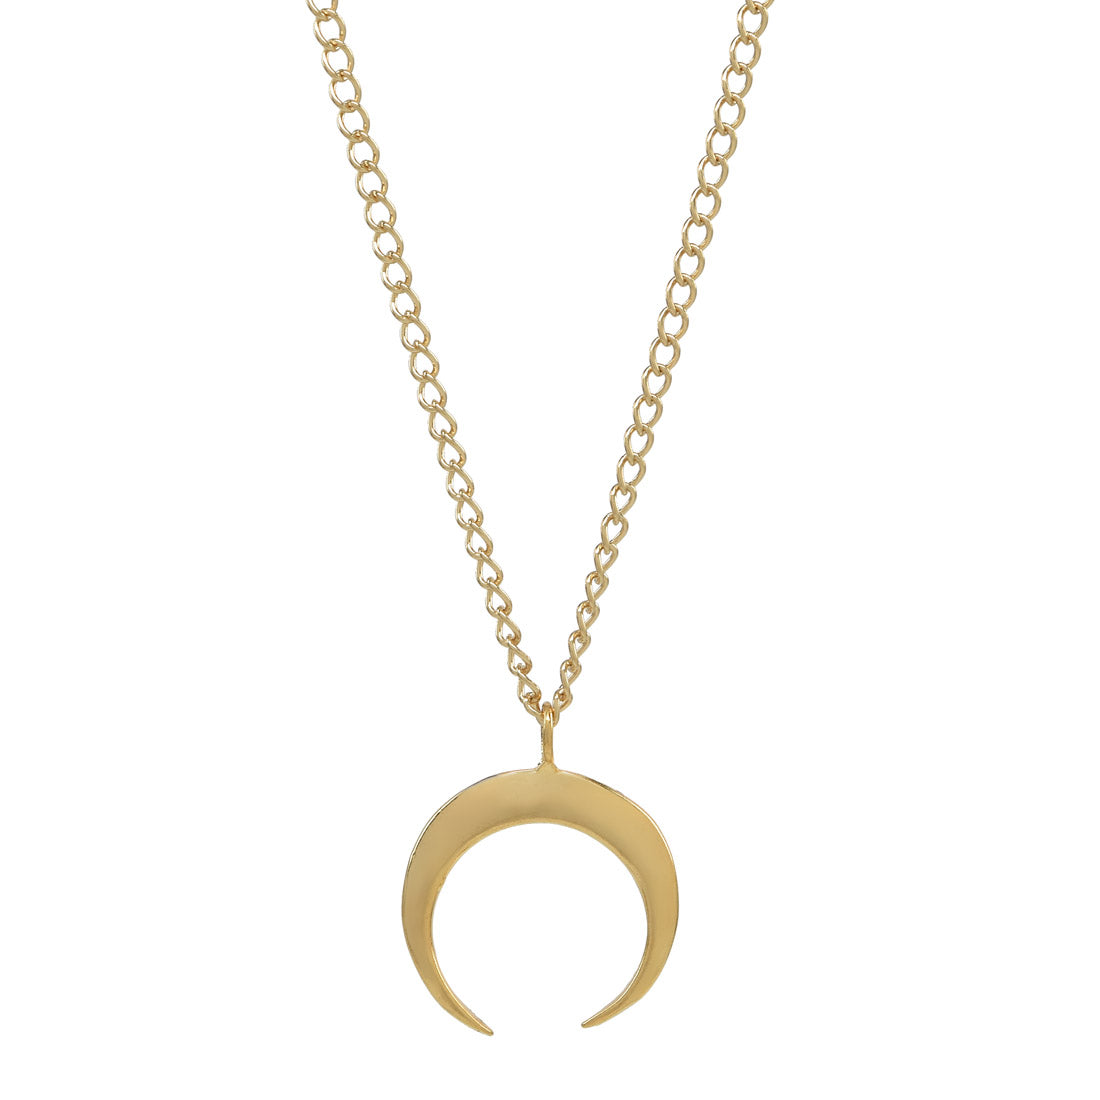 merenfeld moon miriam favery products gold necklace crescent classic jewelry collections dream